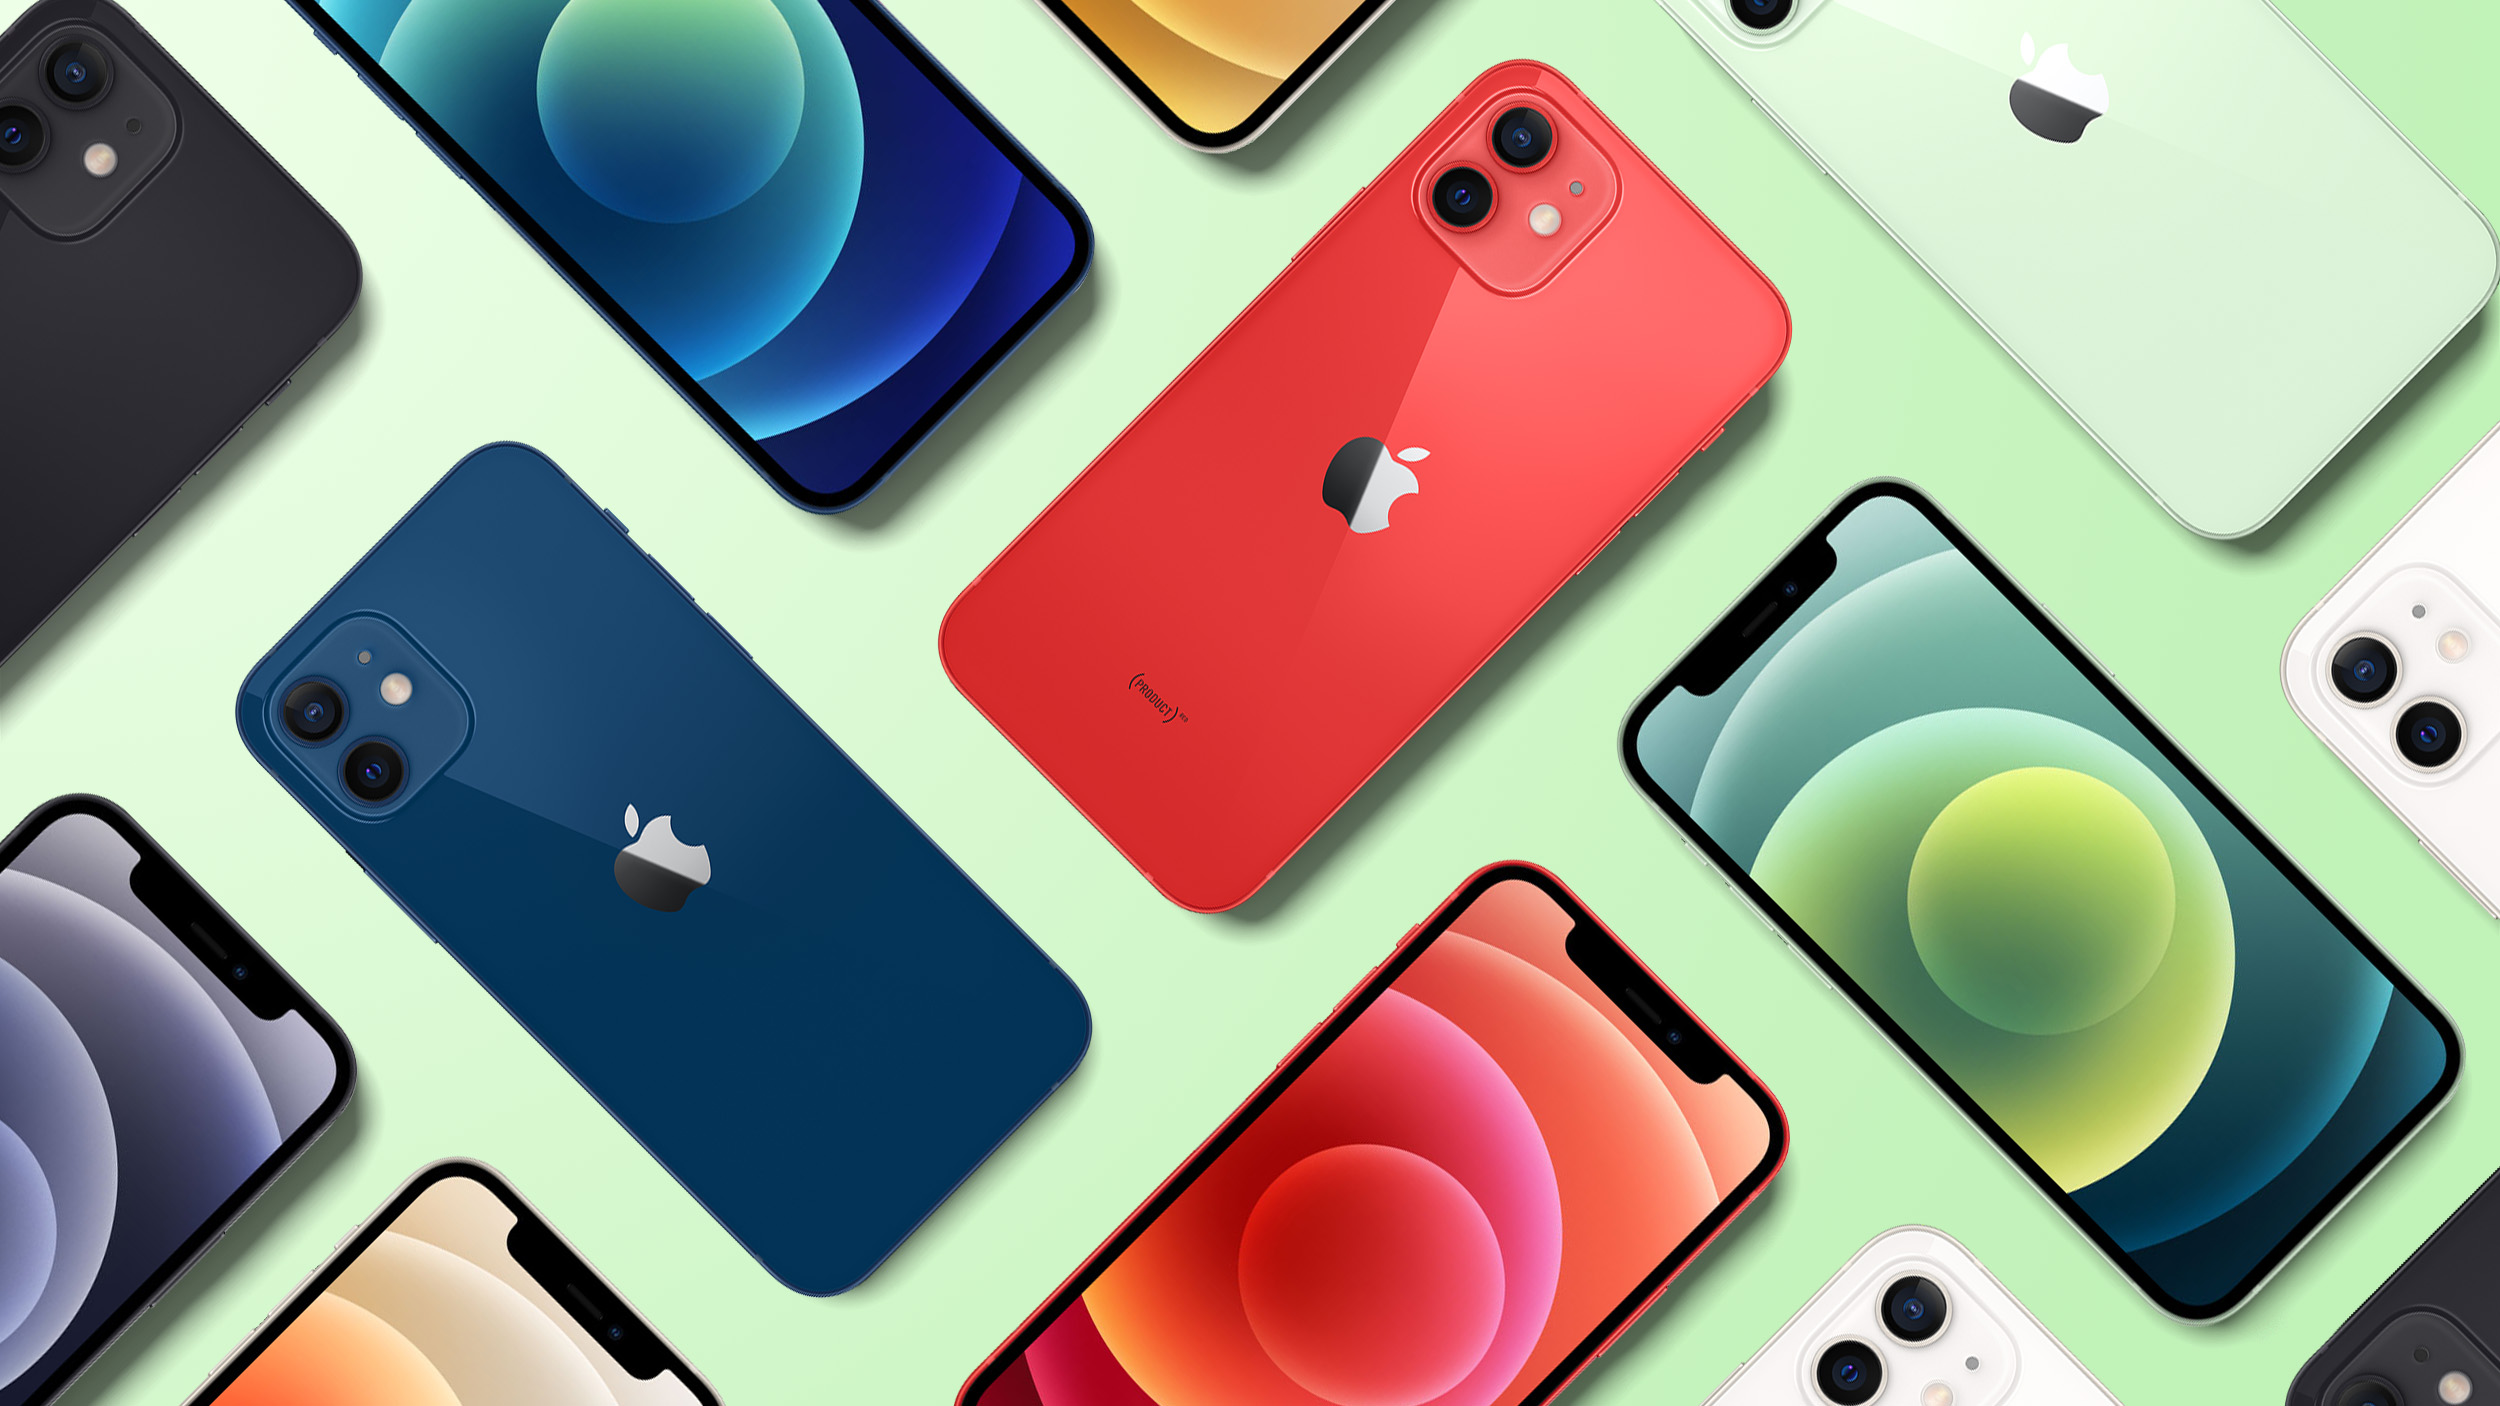 Deals: Shop the Latest Carrier Sales on iPhone 12 and Refurbished Discounts on iPhone 11